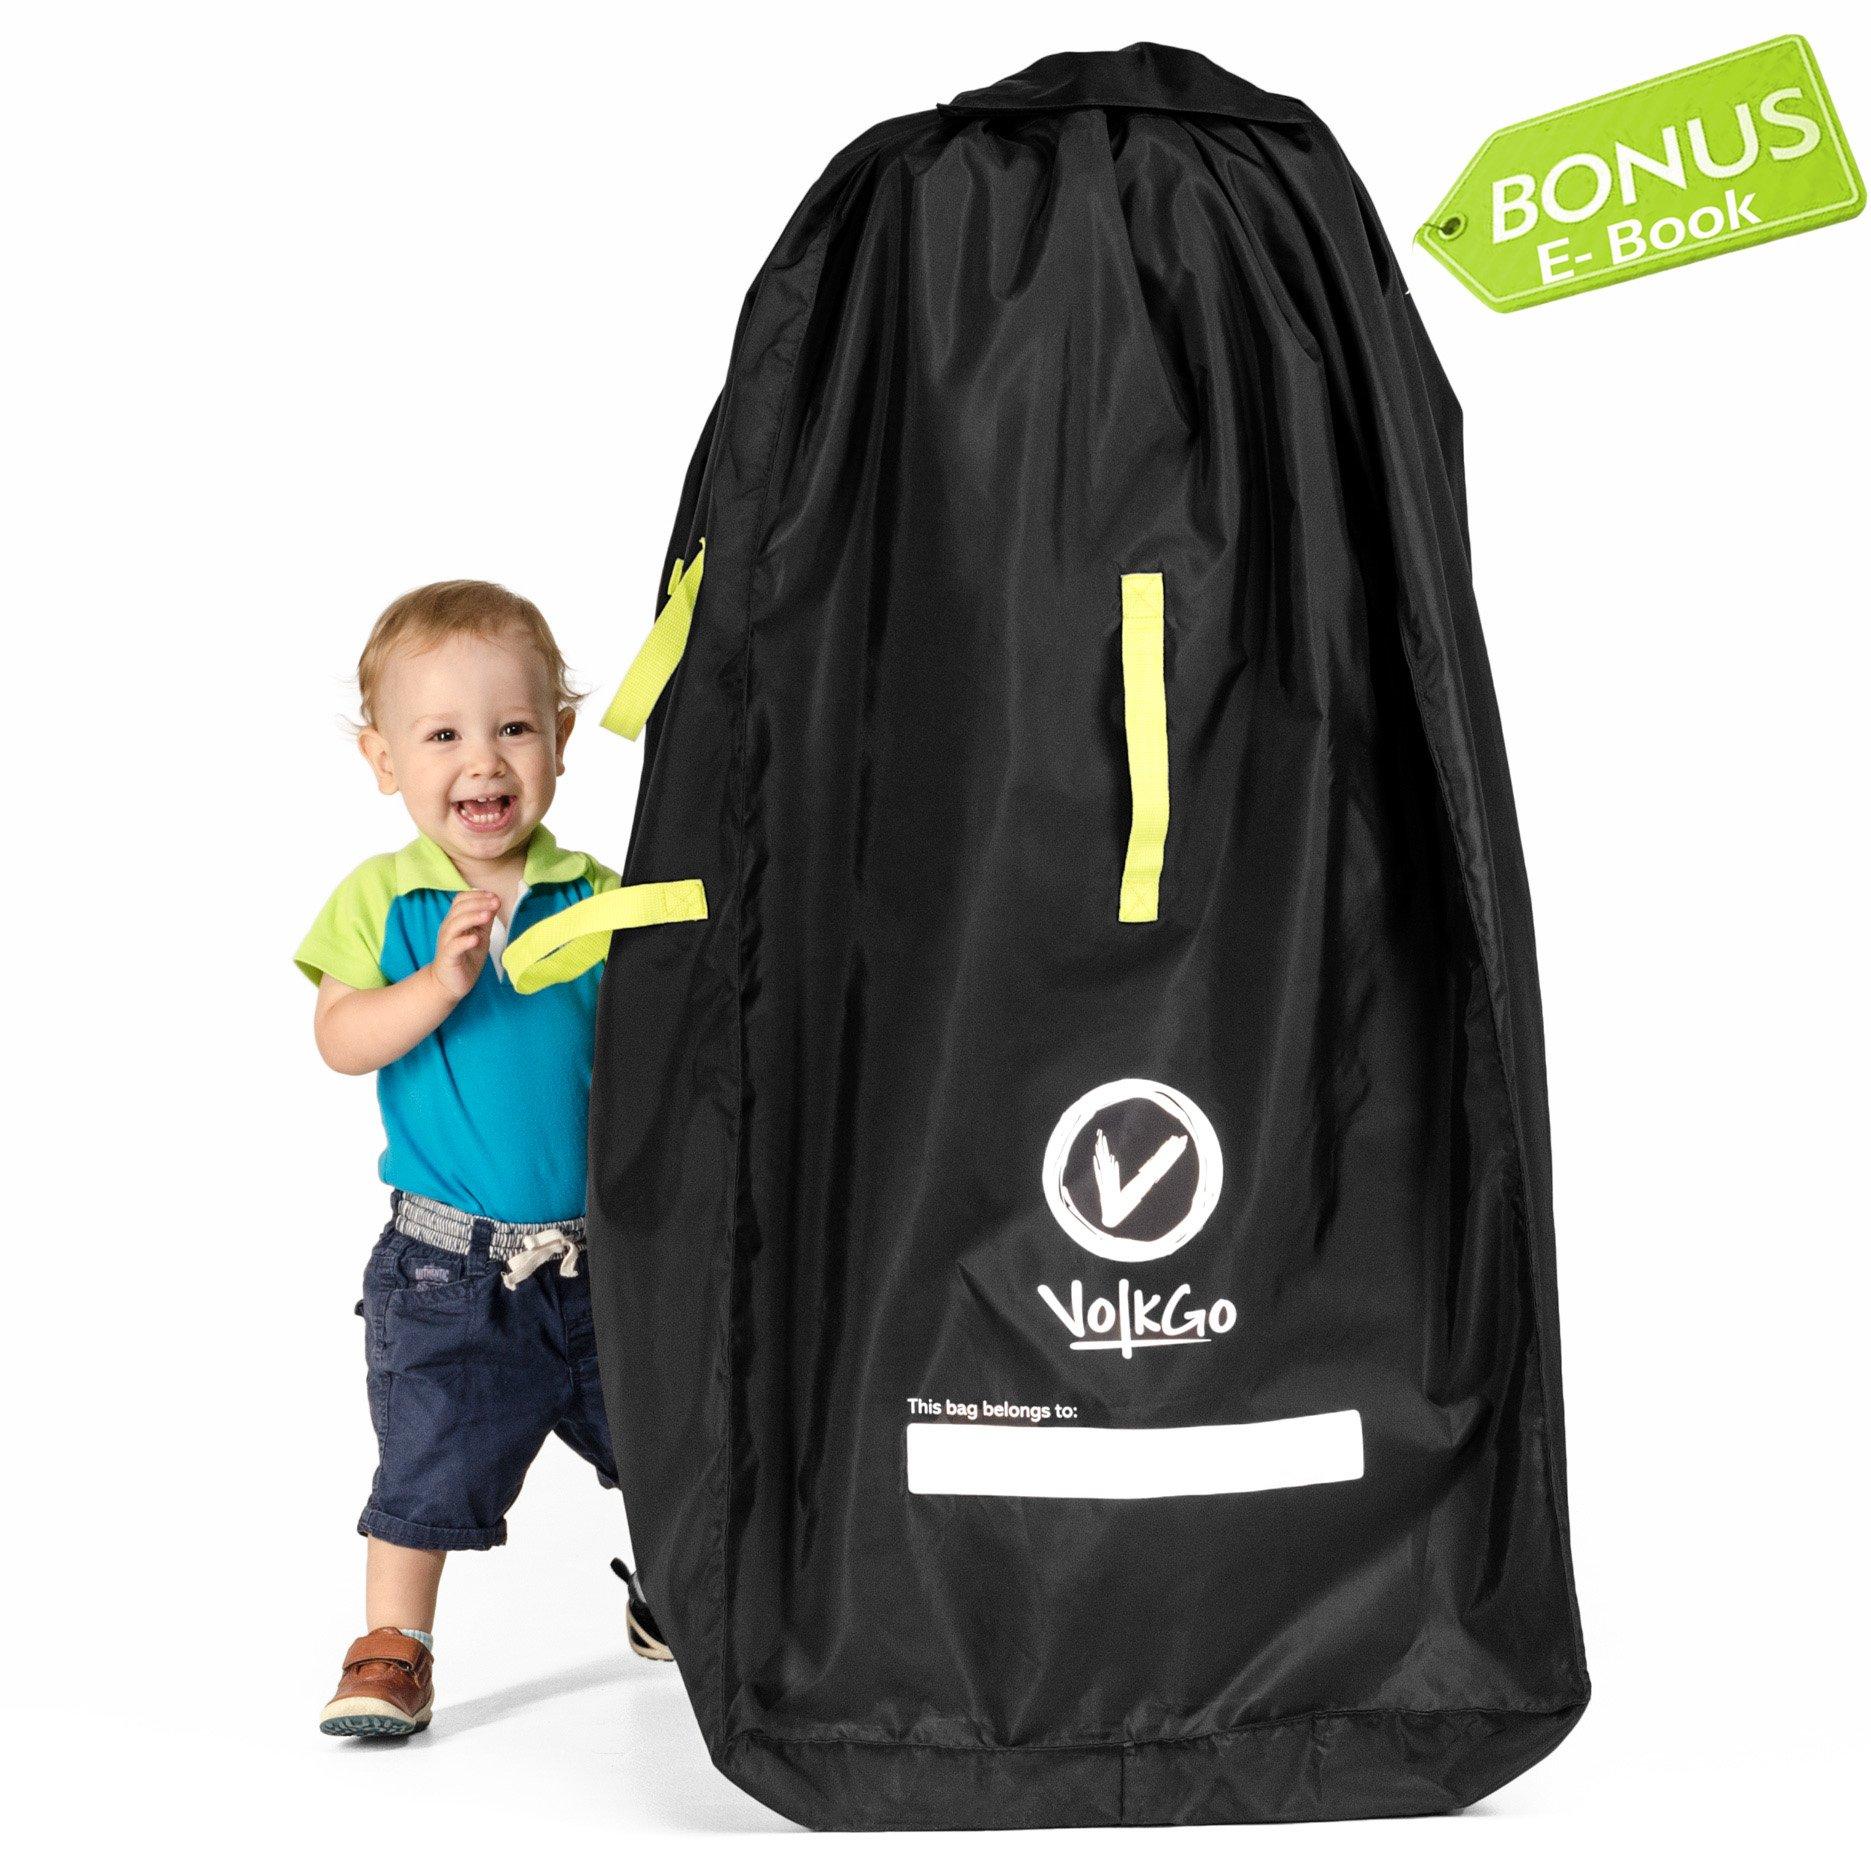 VolkGo Stroller Bag for Airplane Gate Check Bag by V VOLKGO